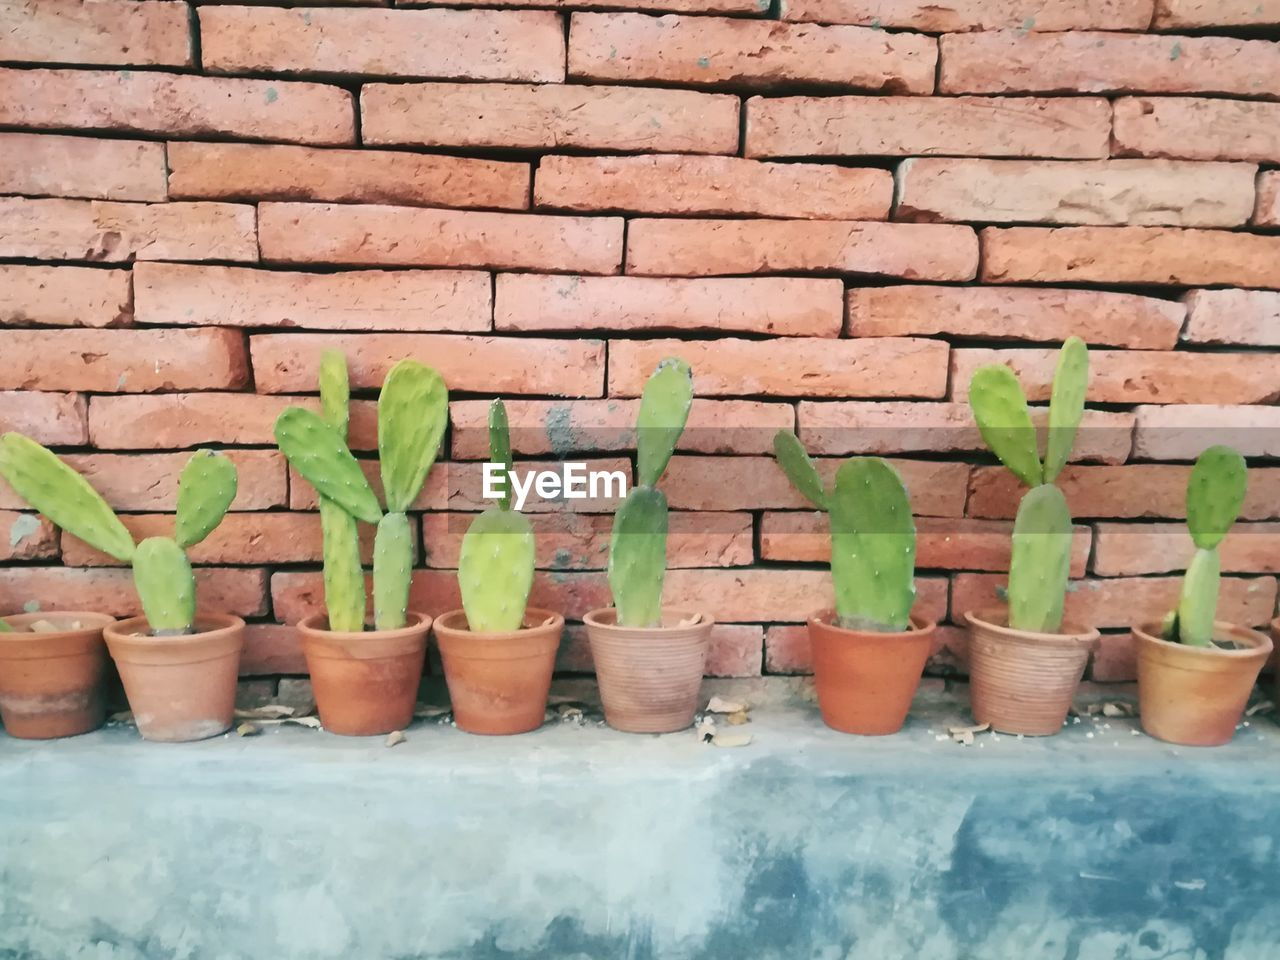 CLOSE-UP OF POTTED PLANTS ON WALL